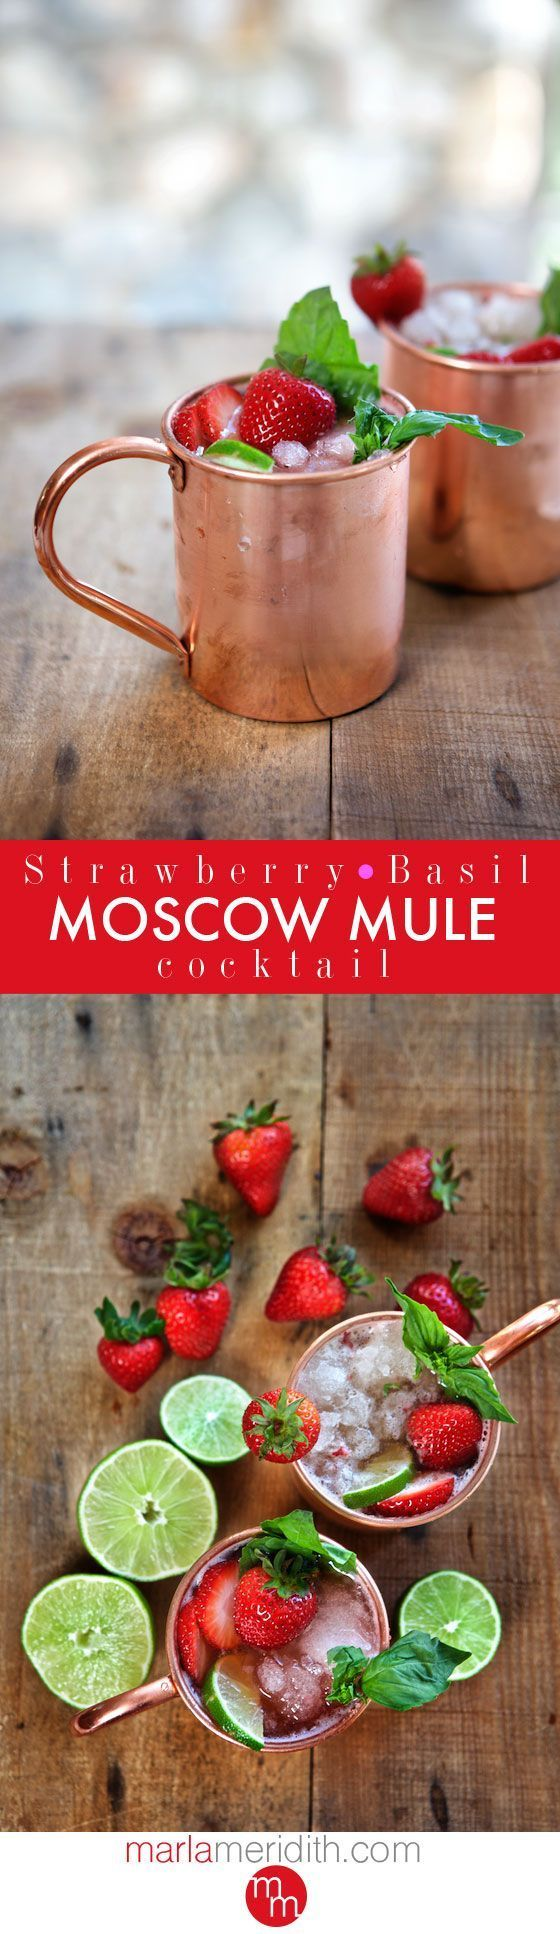 Strawberry Basil Moscow Mule Cocktail Marla Meridith Recipe Mule Cocktail Yummy Drinks Fancy Drinks